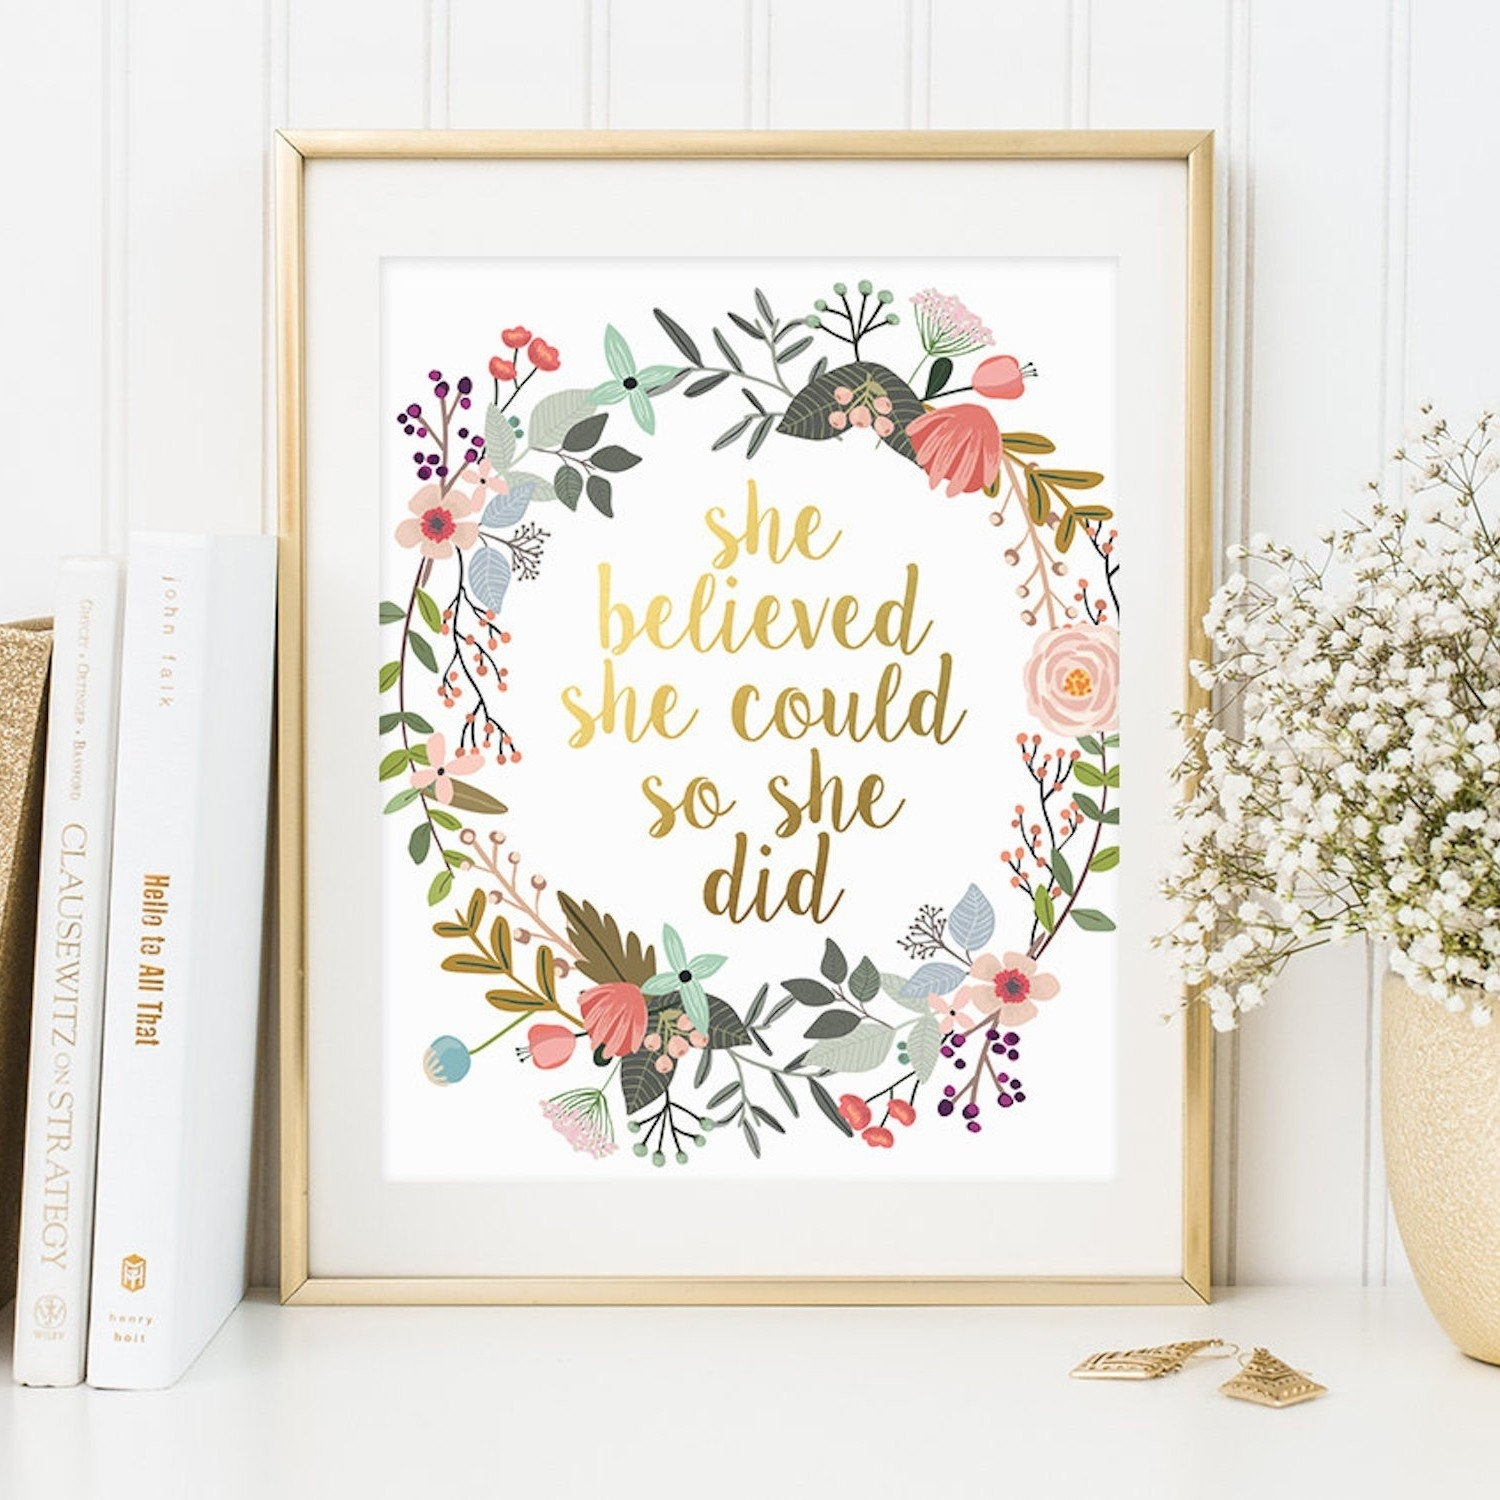 Inspirational Quote Wall Art | Popsugar Moms With Regard To Most Recently Released Inspirational Quotes Wall Art (Gallery 9 of 20)